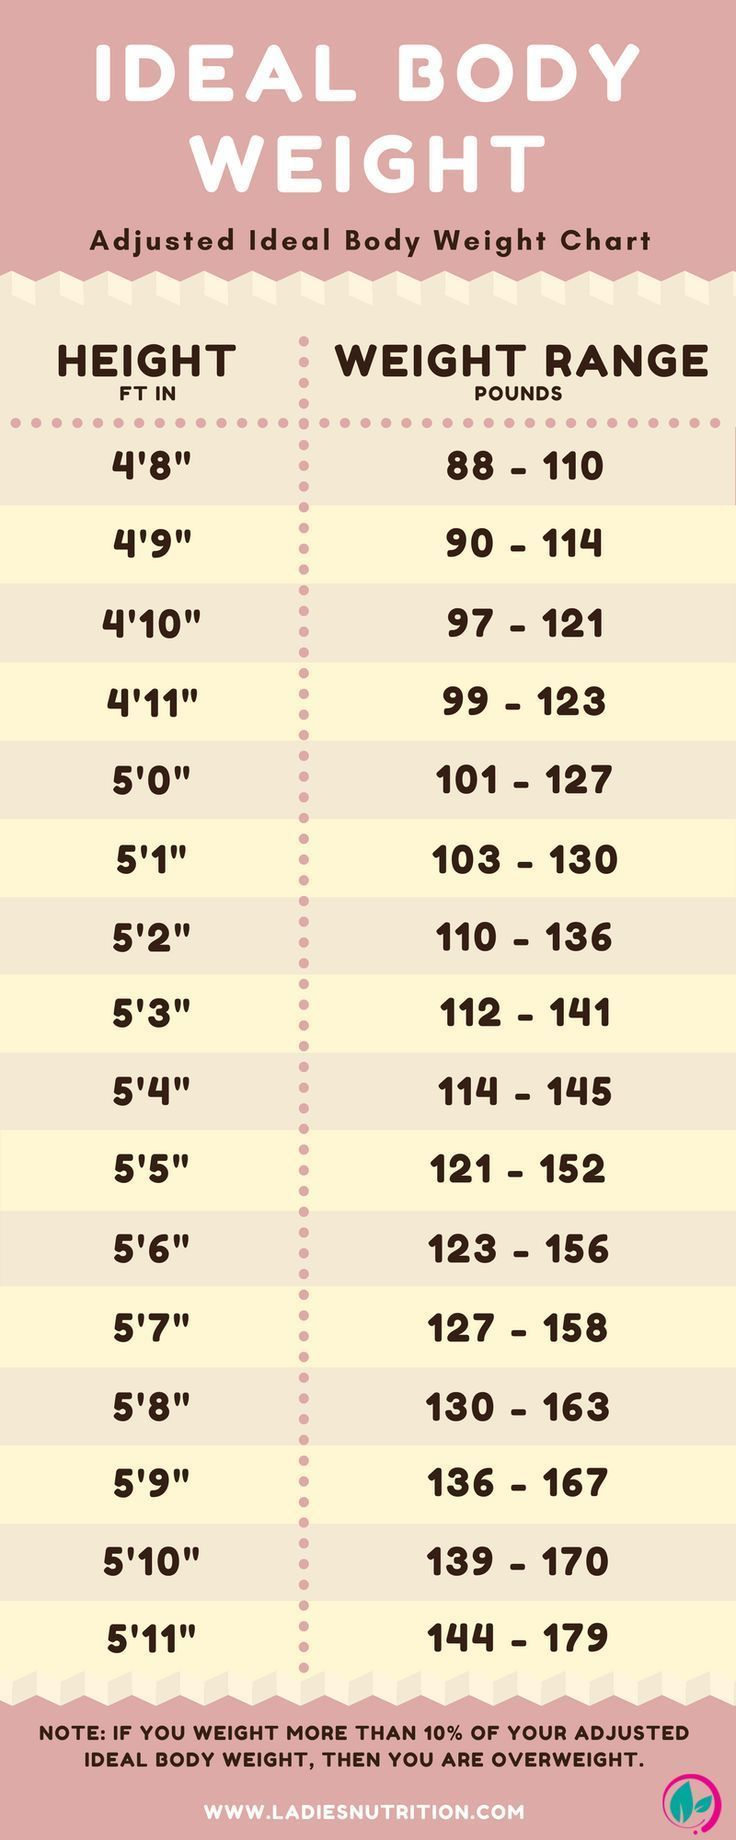 How Much Should You Weigh? Calculate Your Ideal Body Weight | Ideal body weight. Weight for height. Weight charts